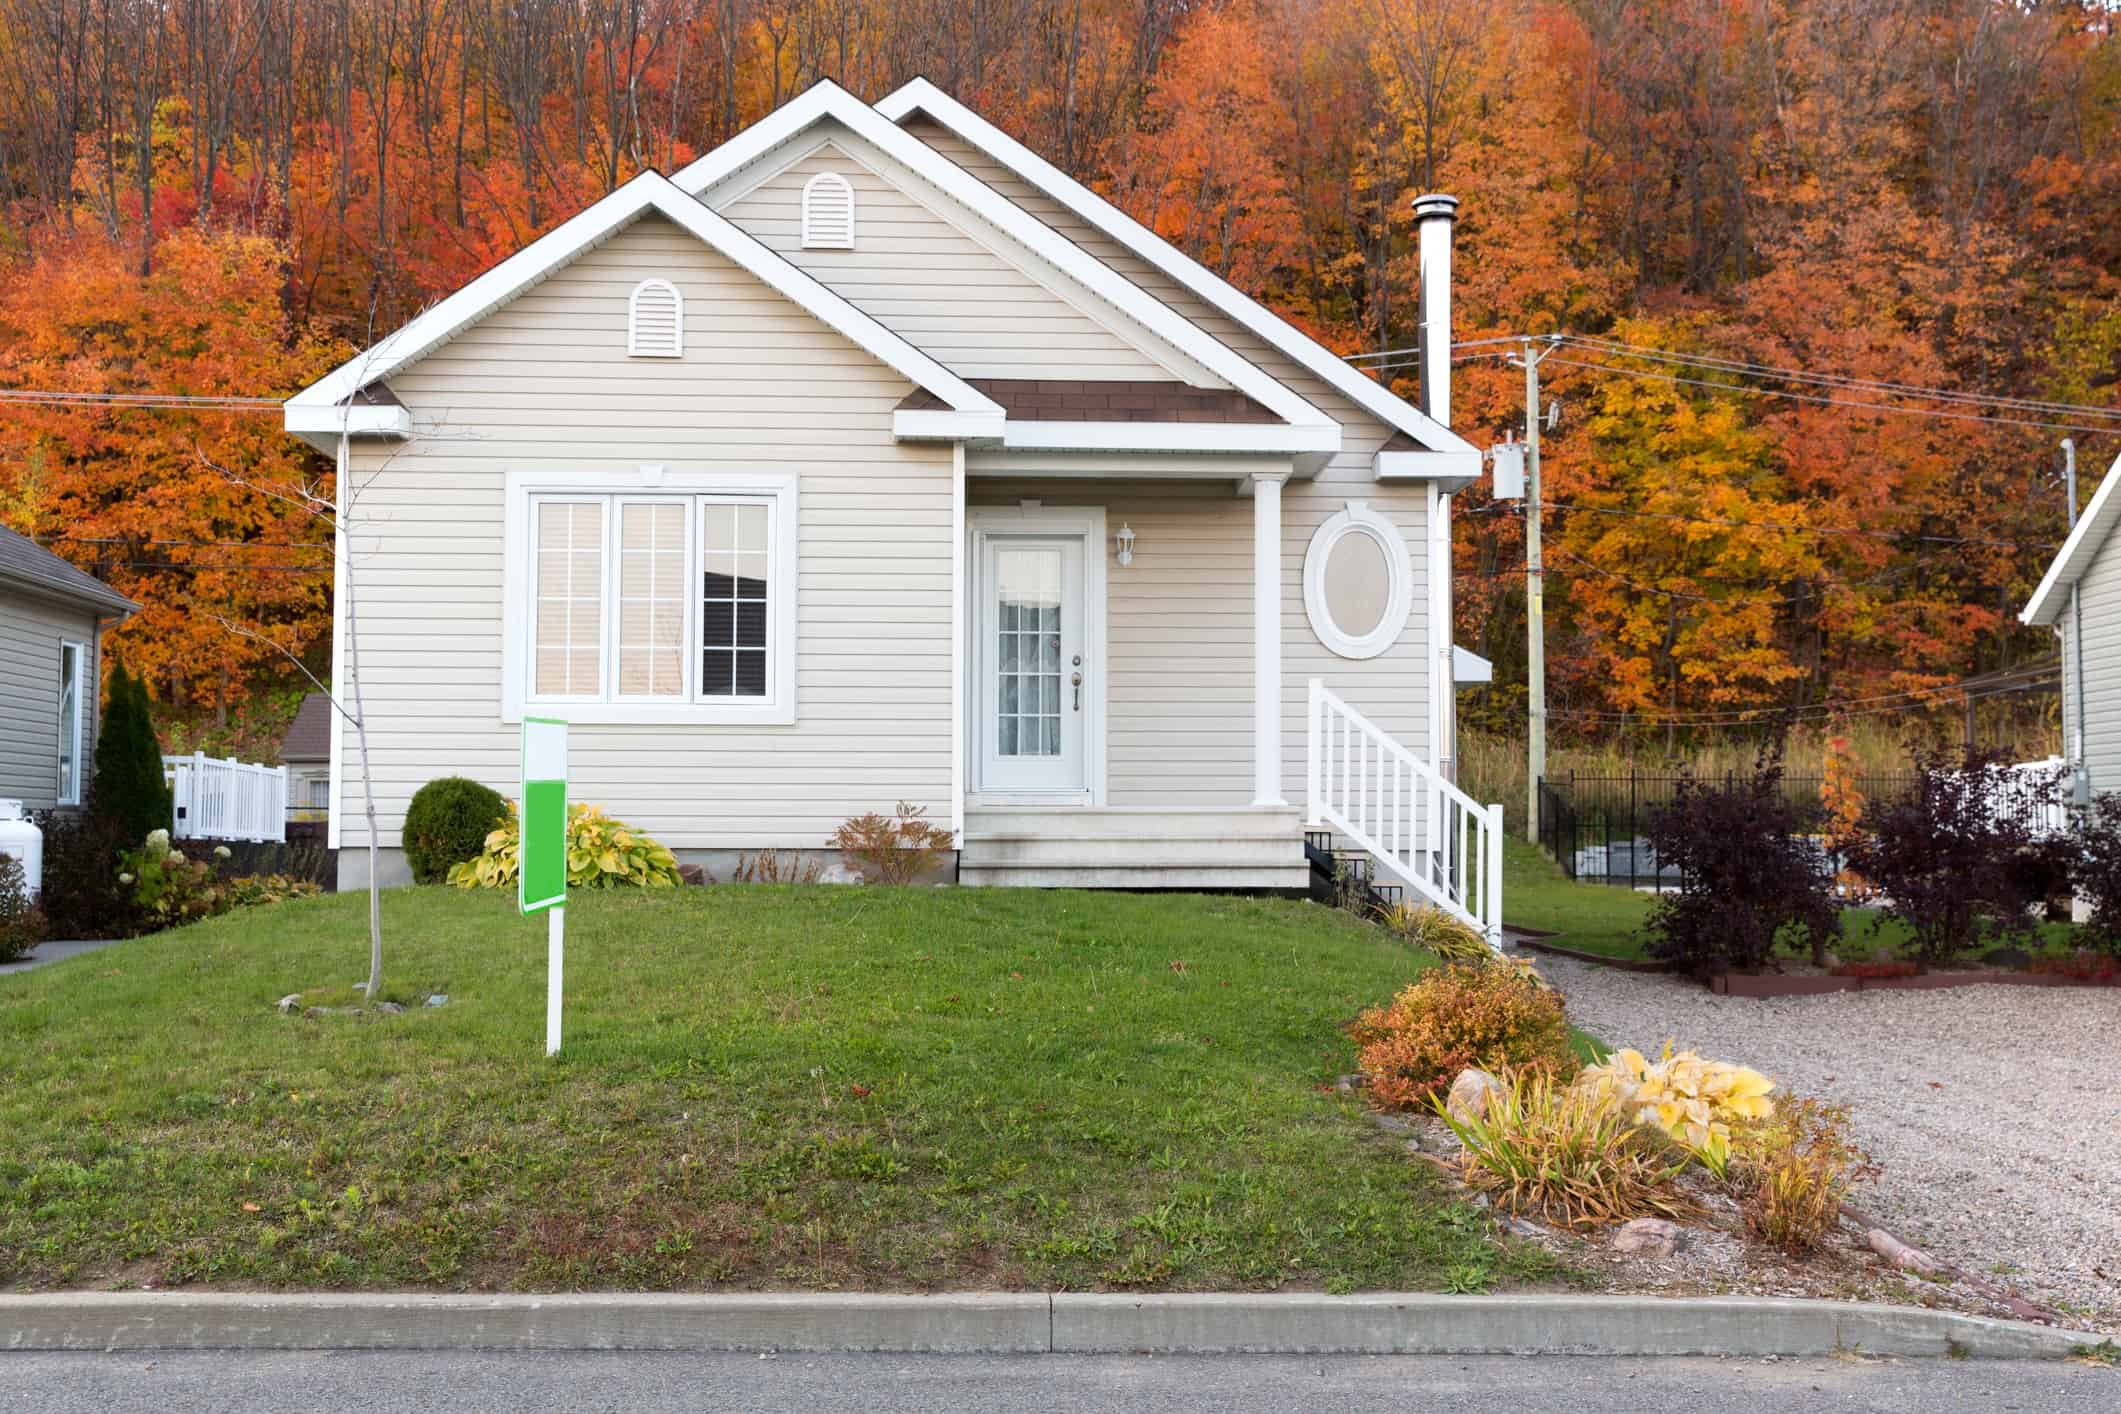 A small home for sale in a residential neighborhood.